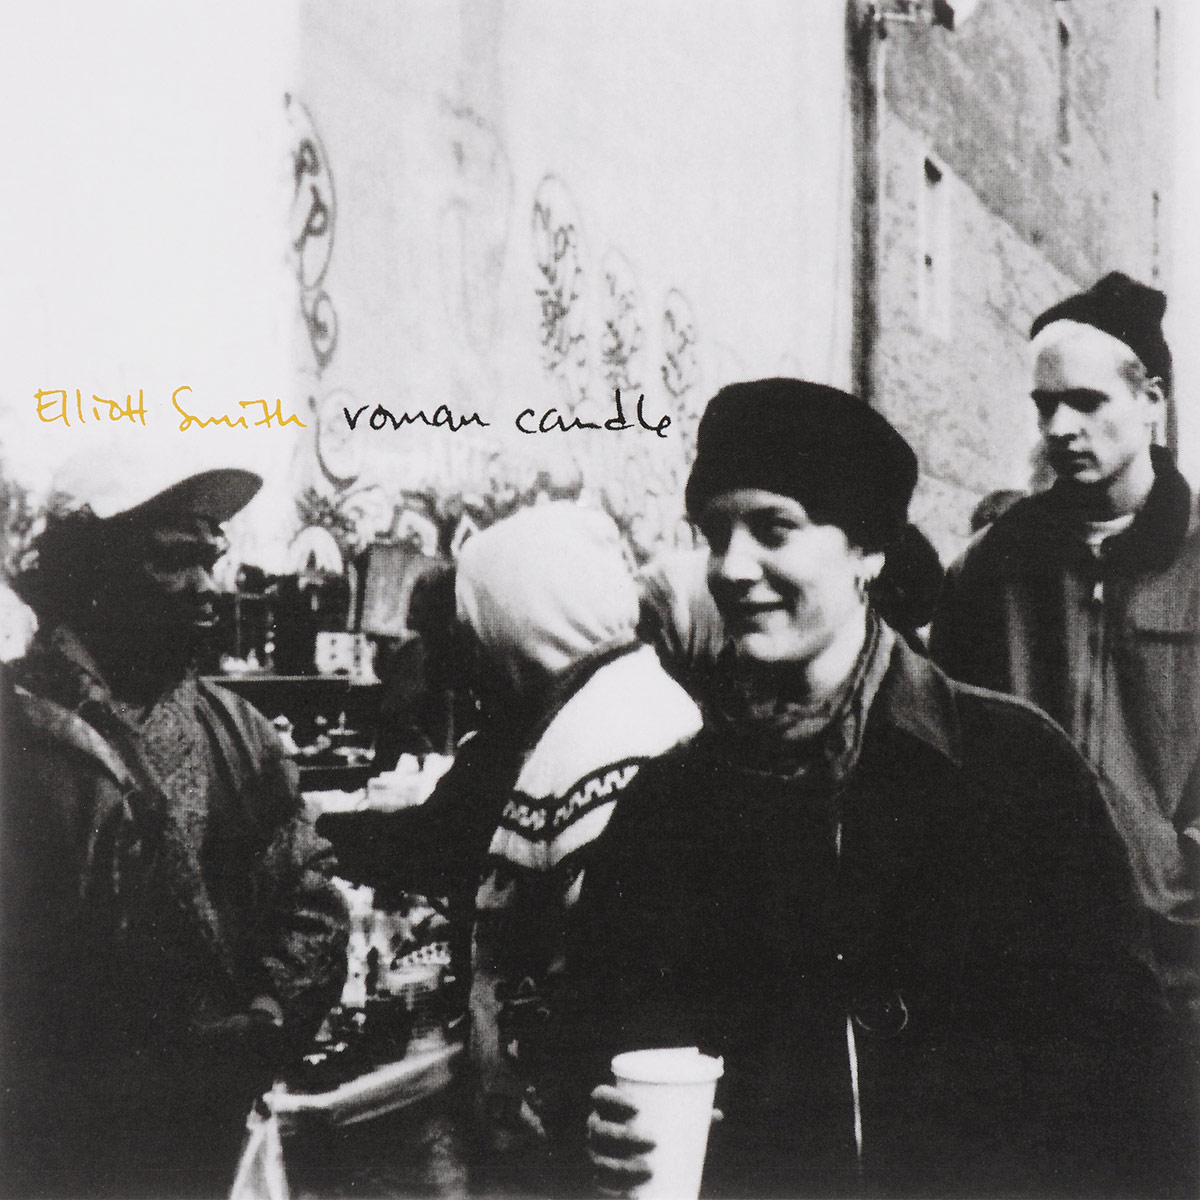 Эллиот Смит Elliott Smith. Roman Candle (LP) elliott smith elliott smith from a basement on the hill 2 lp